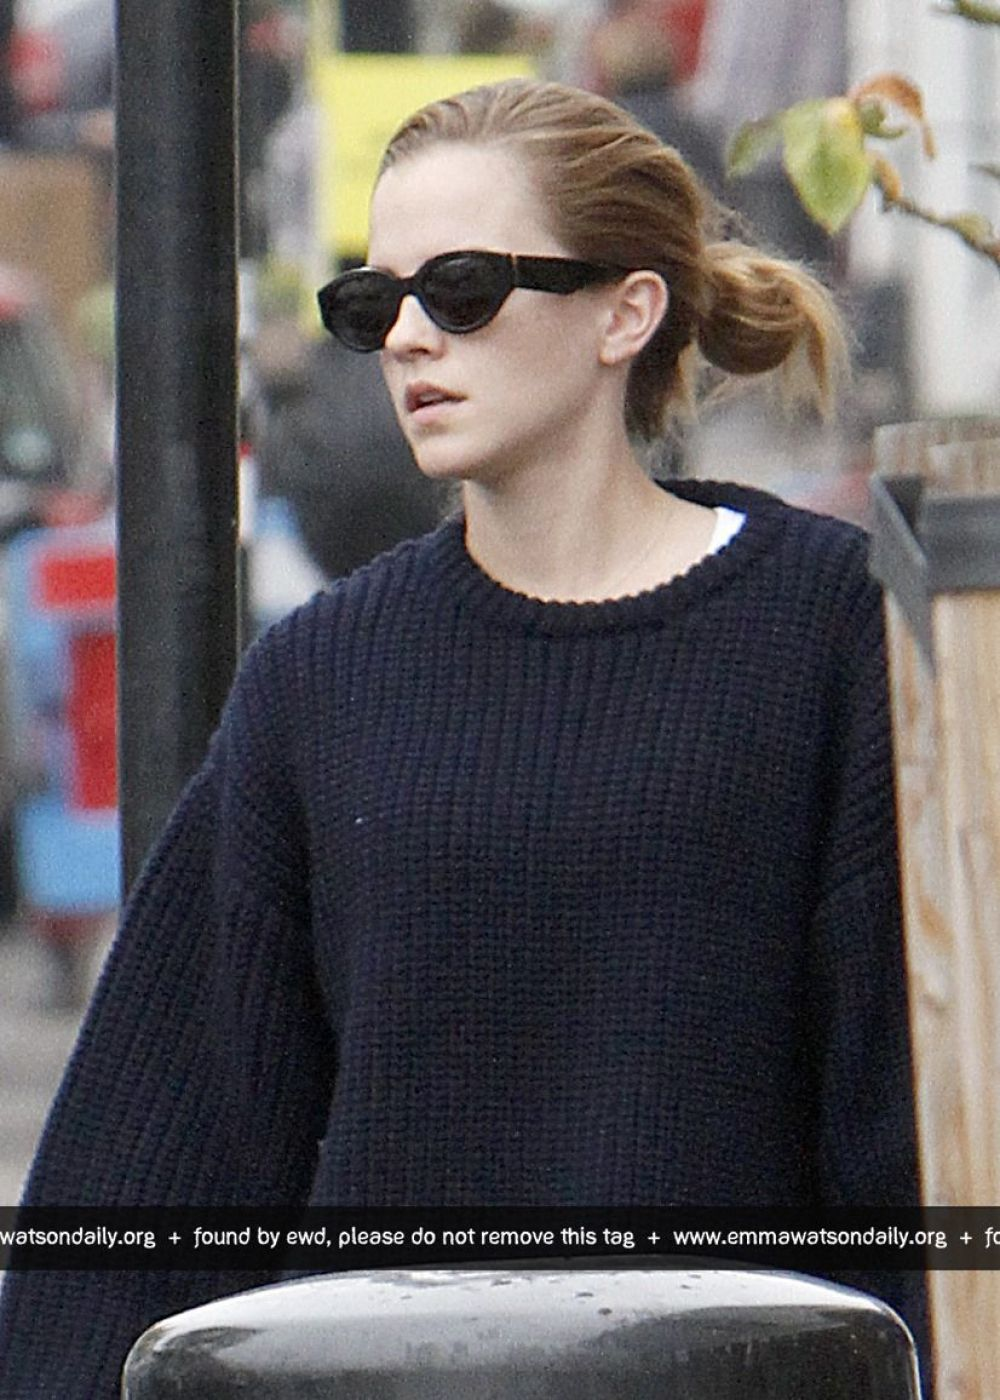 EMMA WATSON Out and About in London 11/03/2015